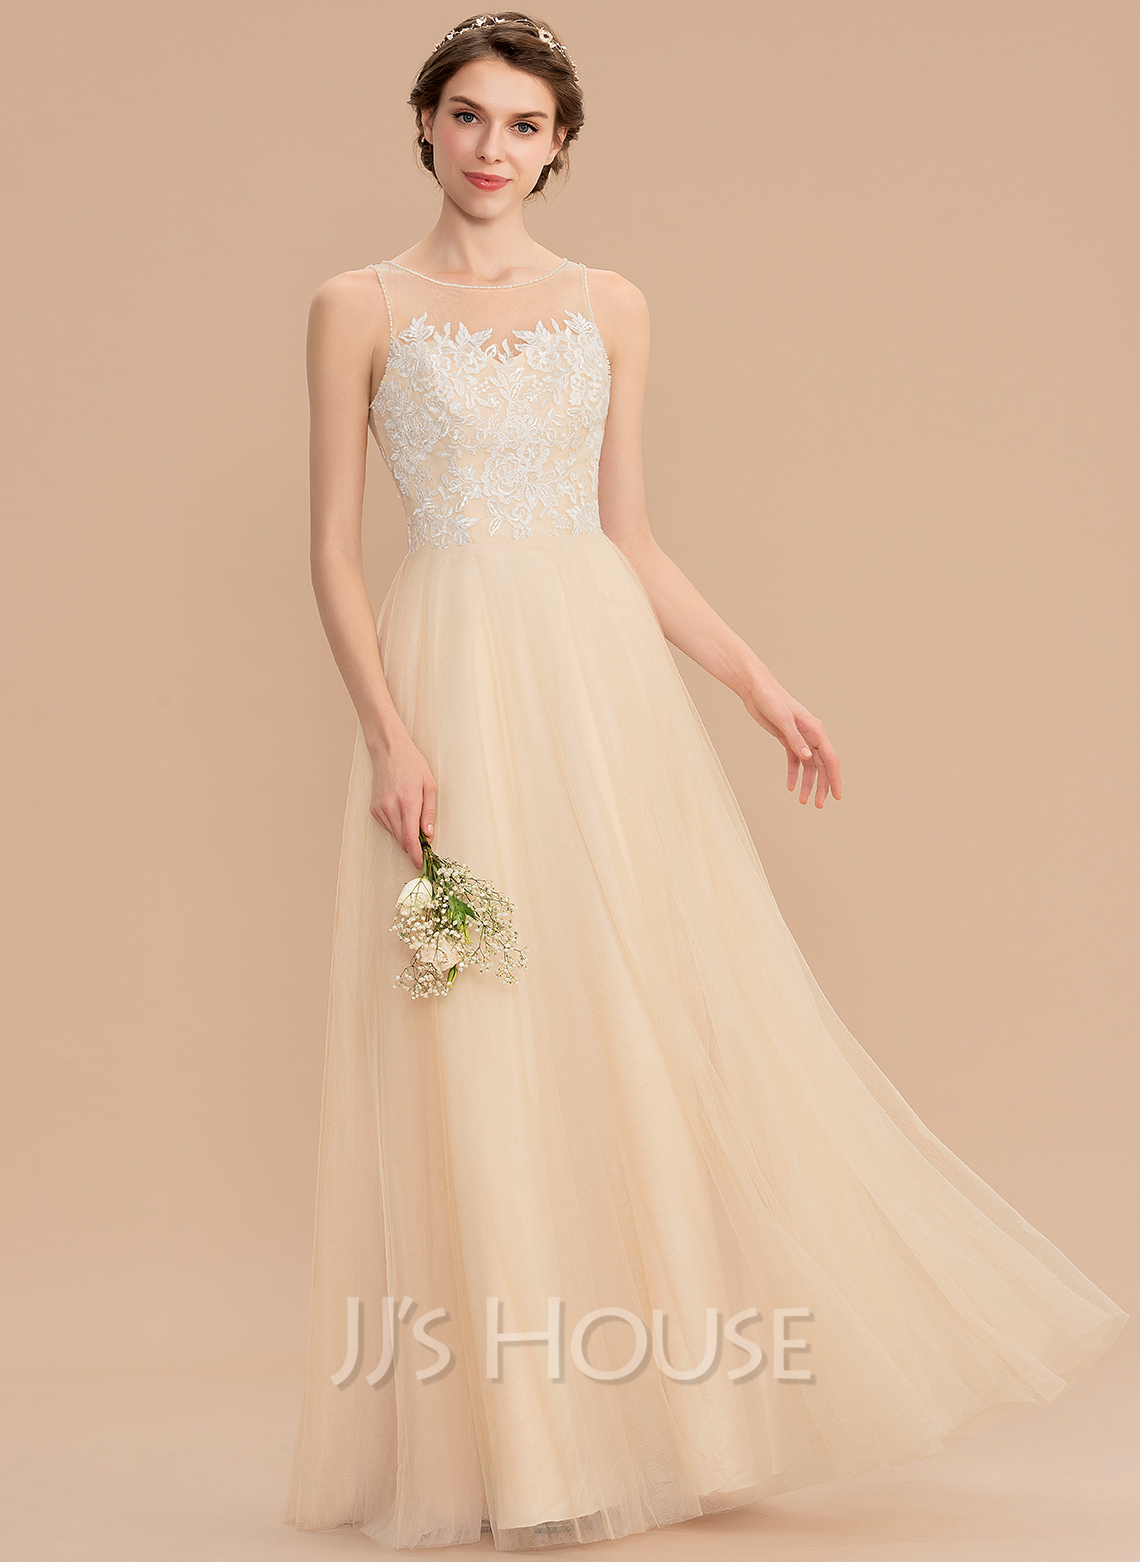 Scoop Neck Floor-Length Tulle Lace Bridesmaid Dress